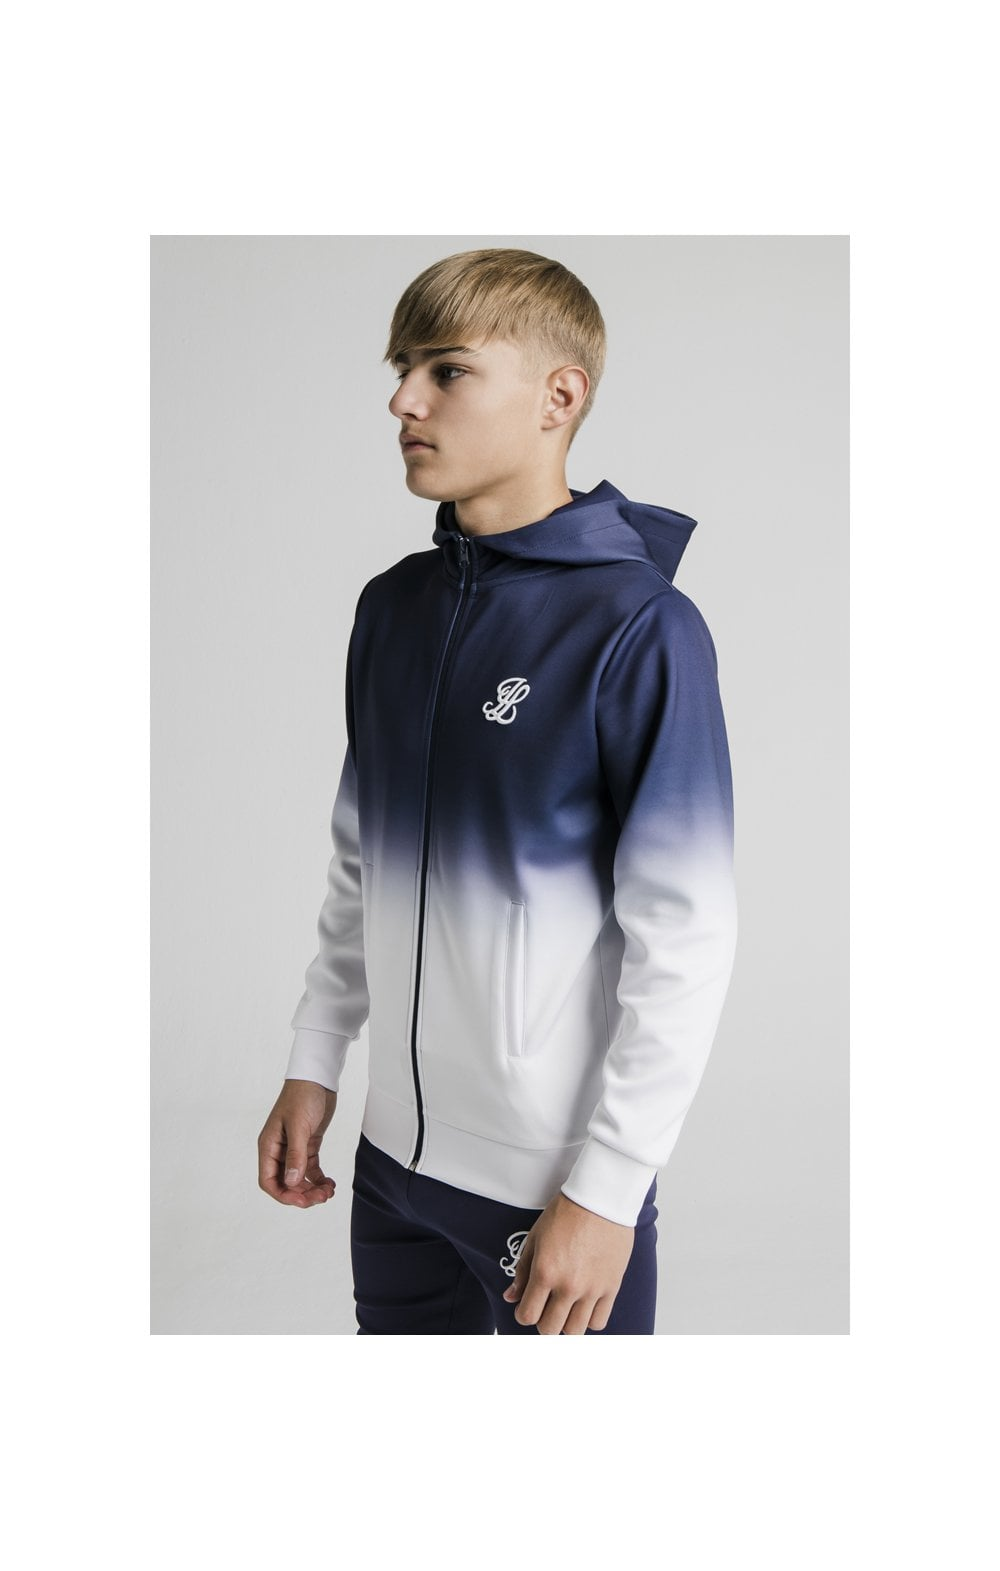 Illusive London Athlete Zip Through Hoodie - Navy & White Fade